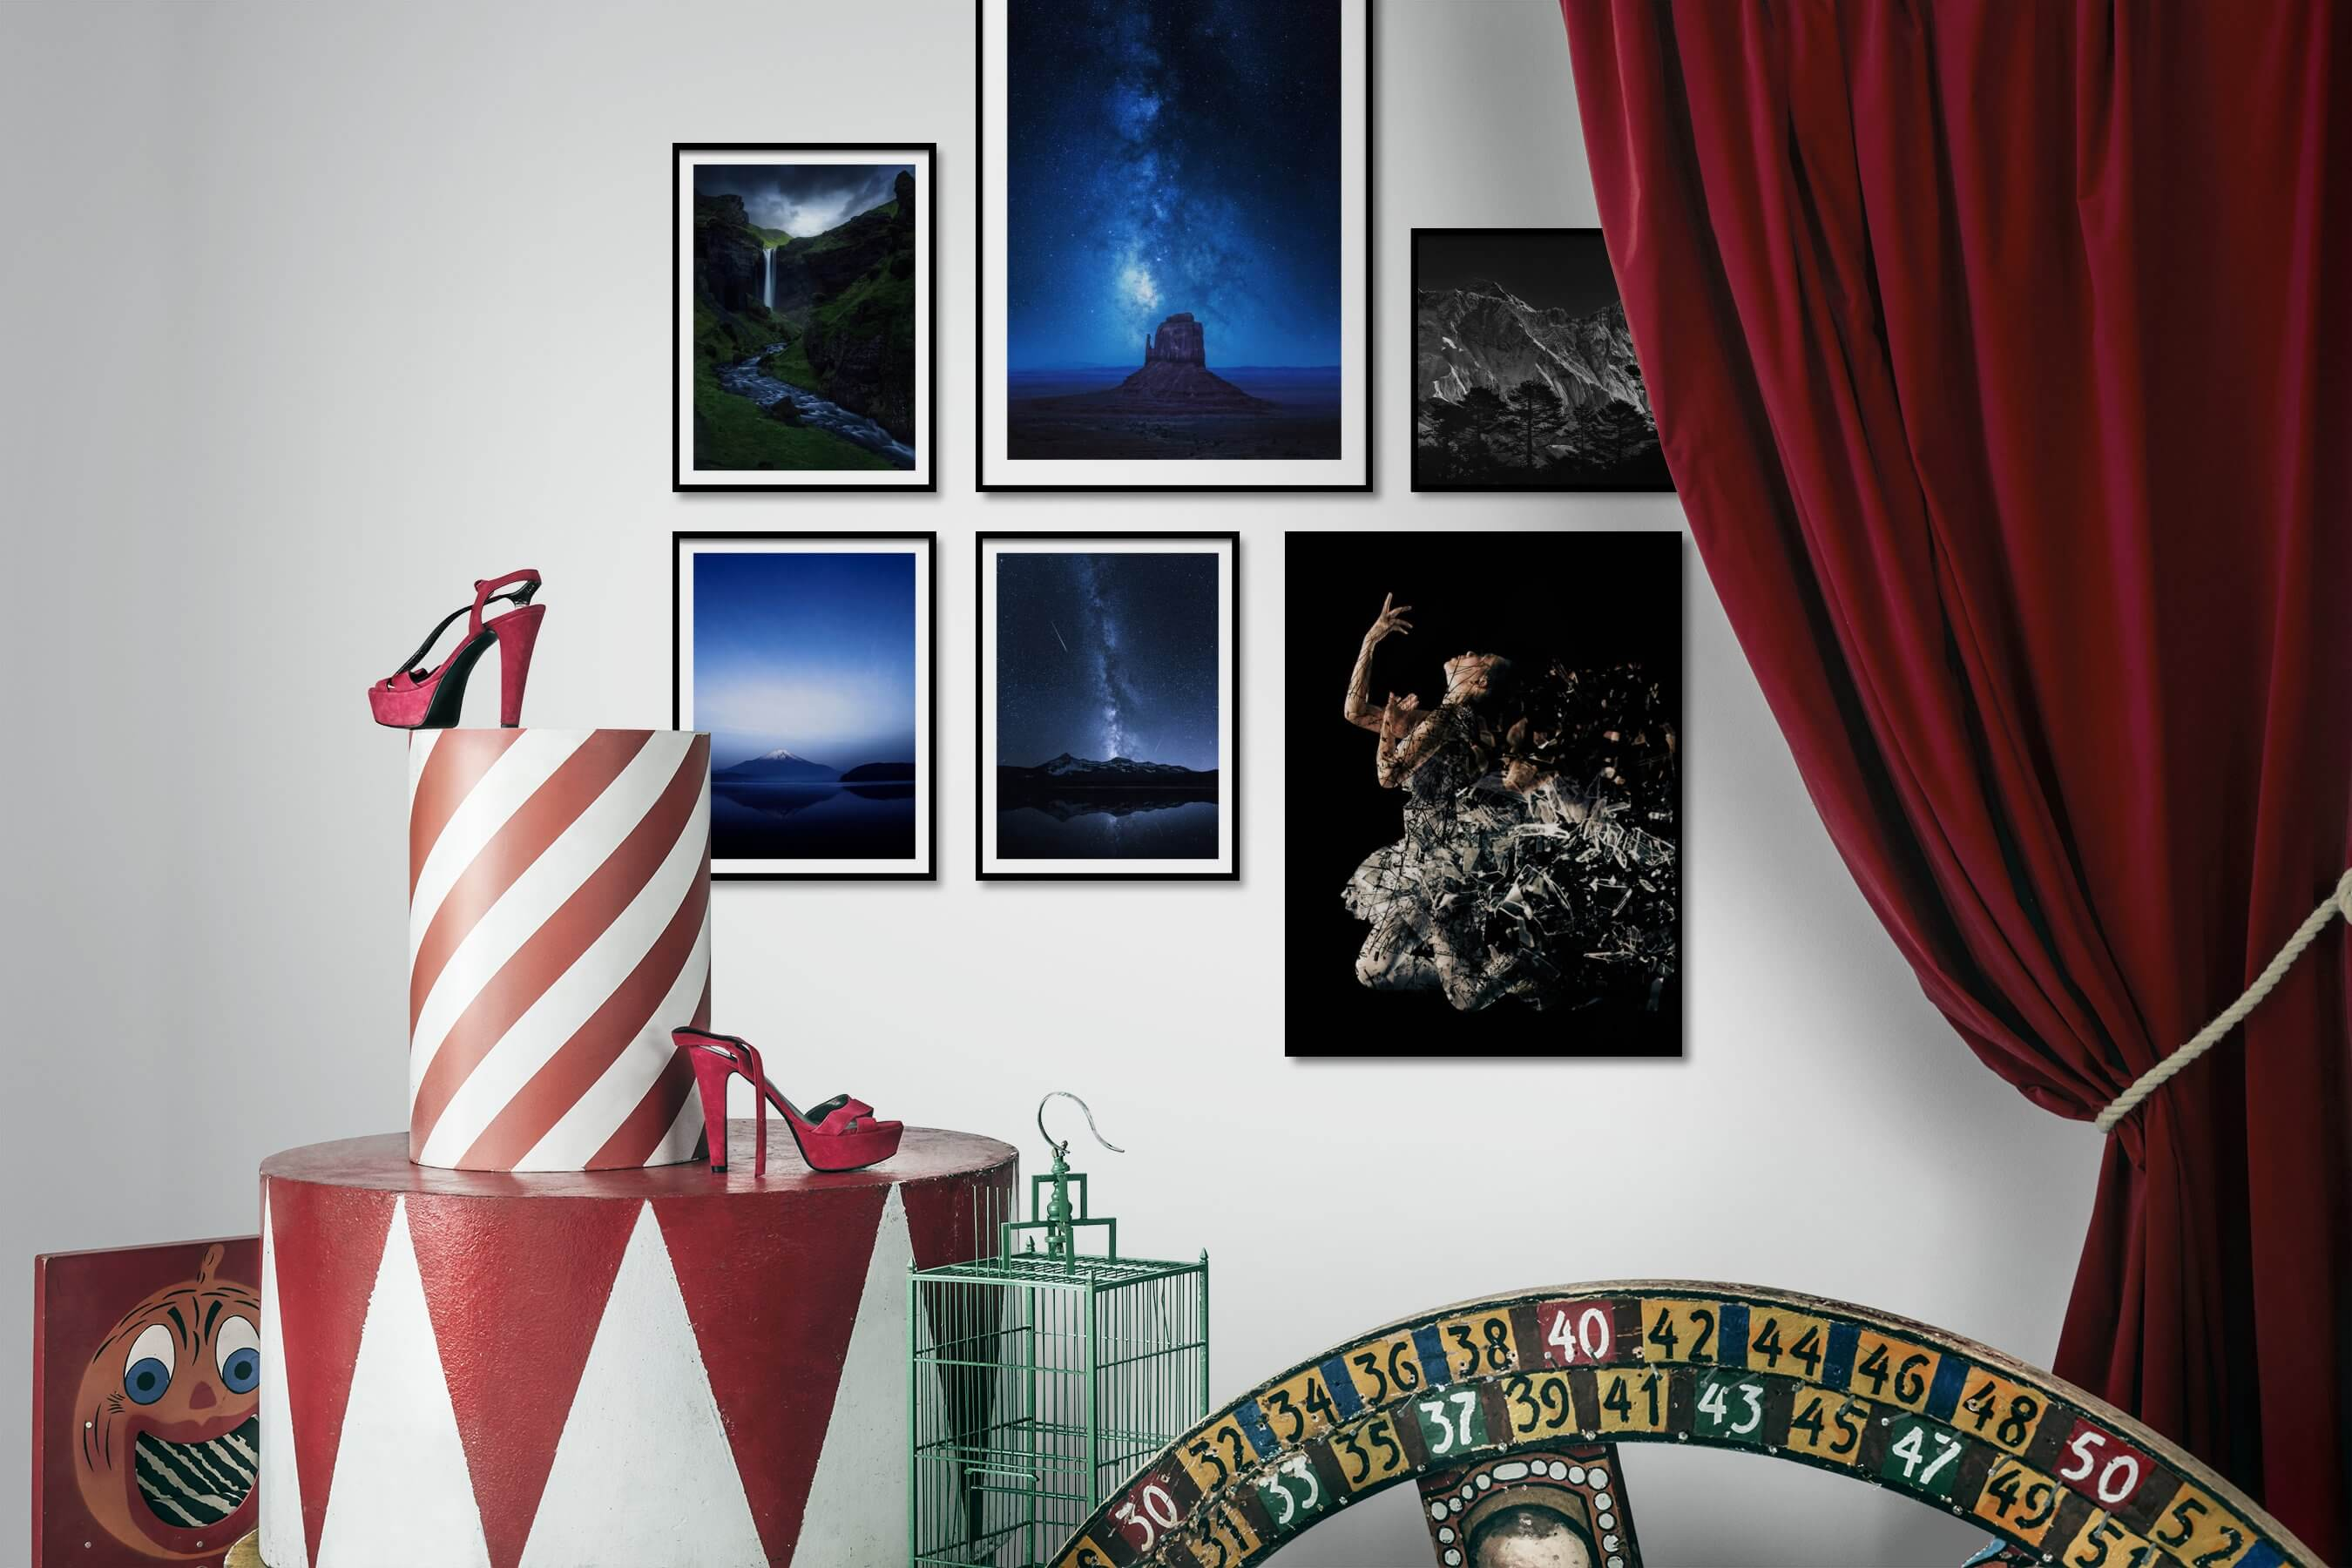 Gallery wall idea with six framed pictures arranged on a wall depicting Nature, Americana, Artsy, Dark Tones, Black & White, and Mindfulness